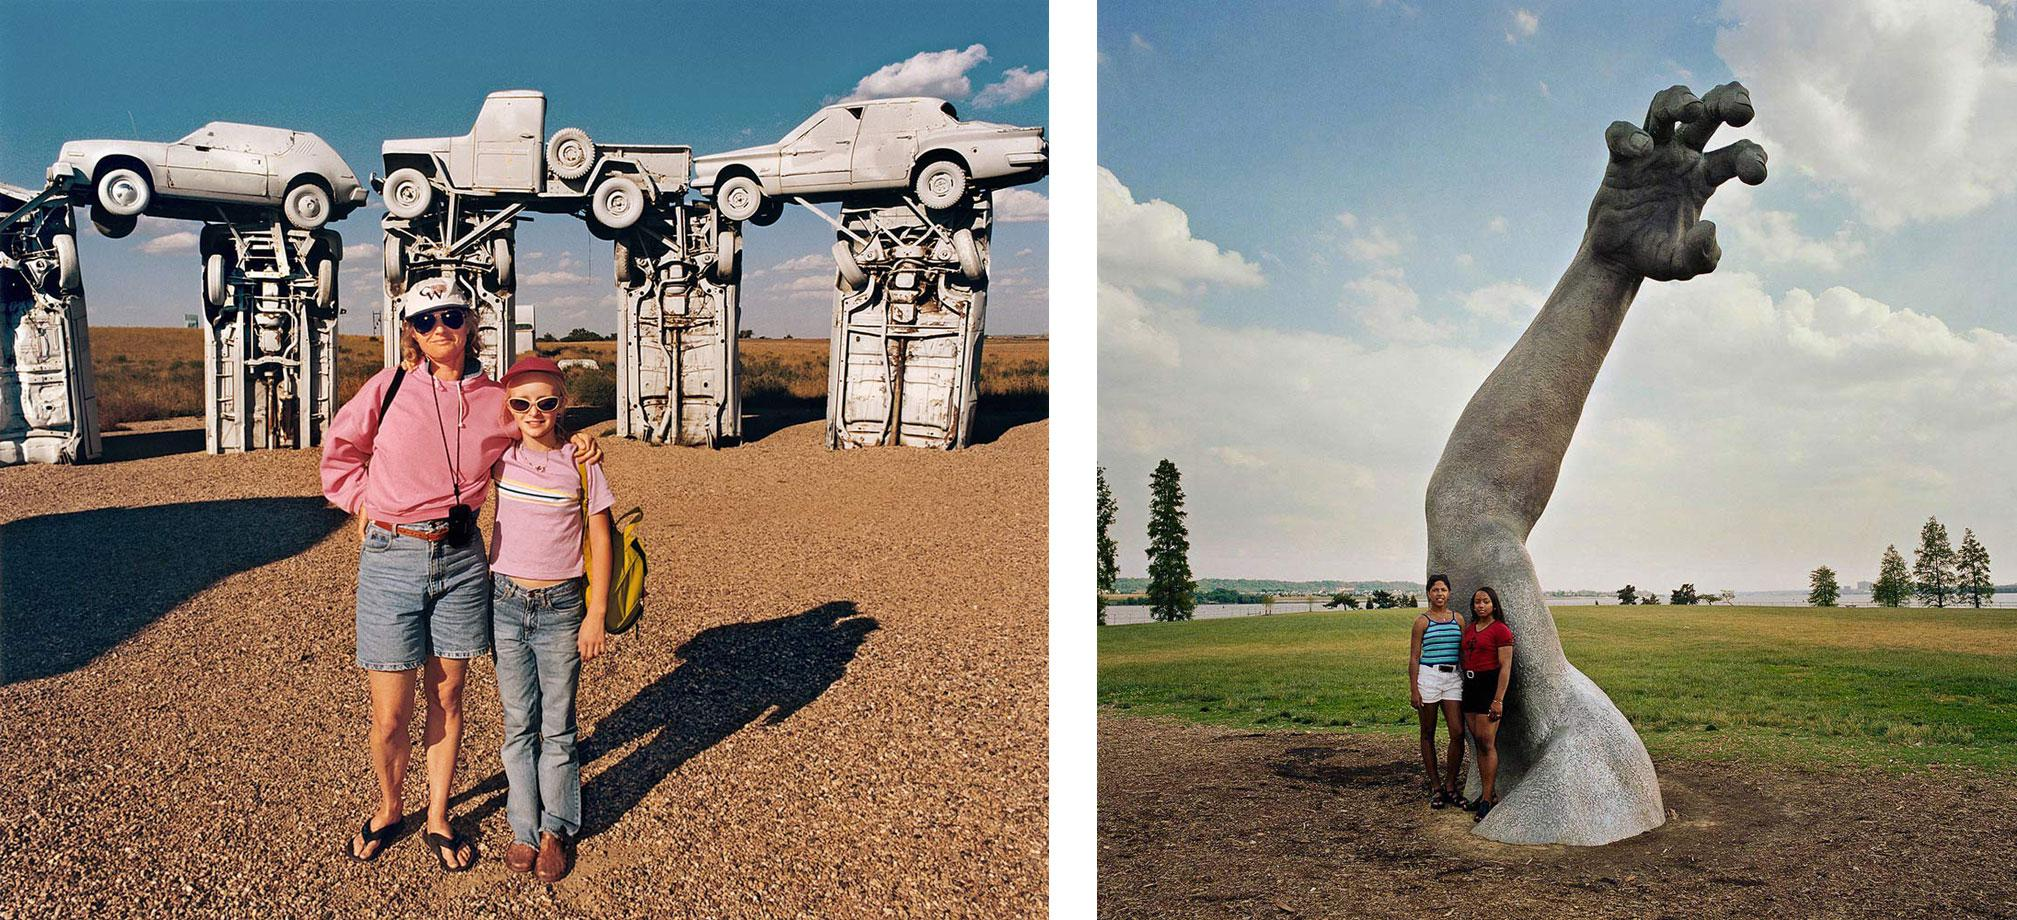 Mother and Daughter at Carhenge, Nebraska 1998 (r) Two Young Women at the Awakening Sculpture, Haynes Point, Washington, D.C. 1991